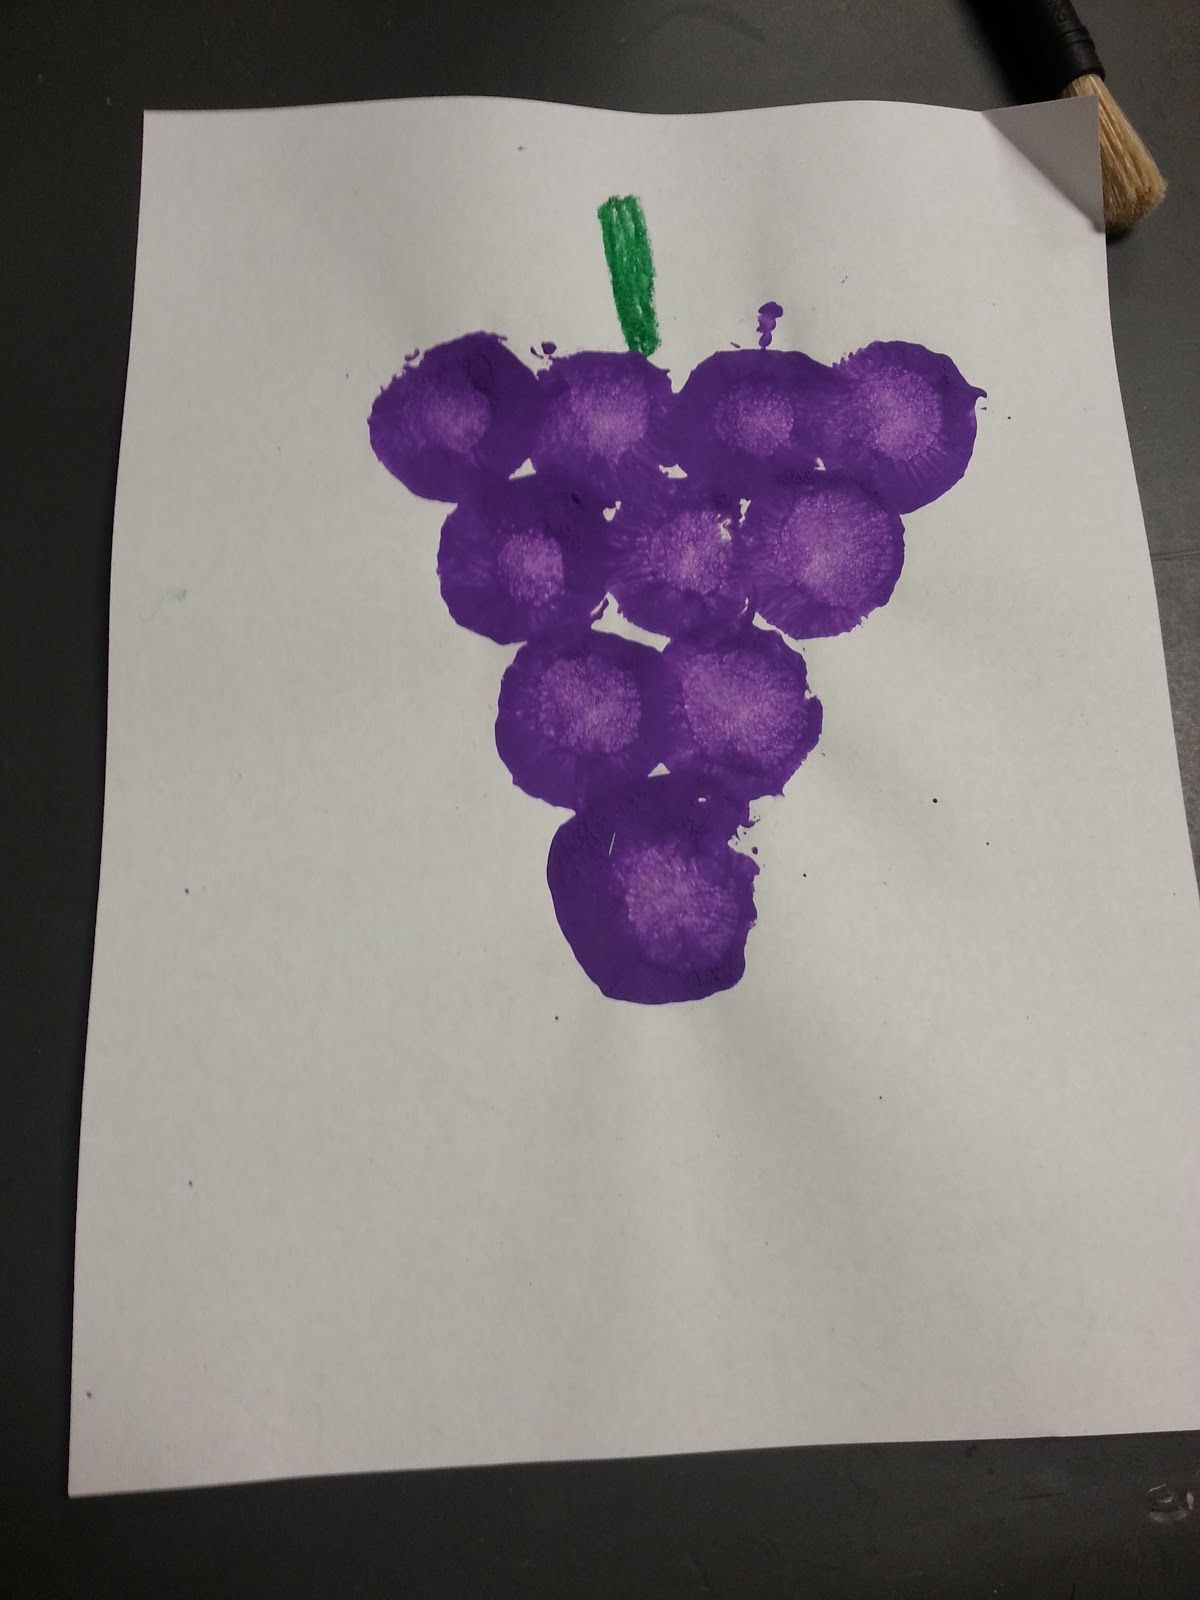 Colors And Fruit Classes Could Taste Stamp Paint With And Talk About Each Colored Fruit Red